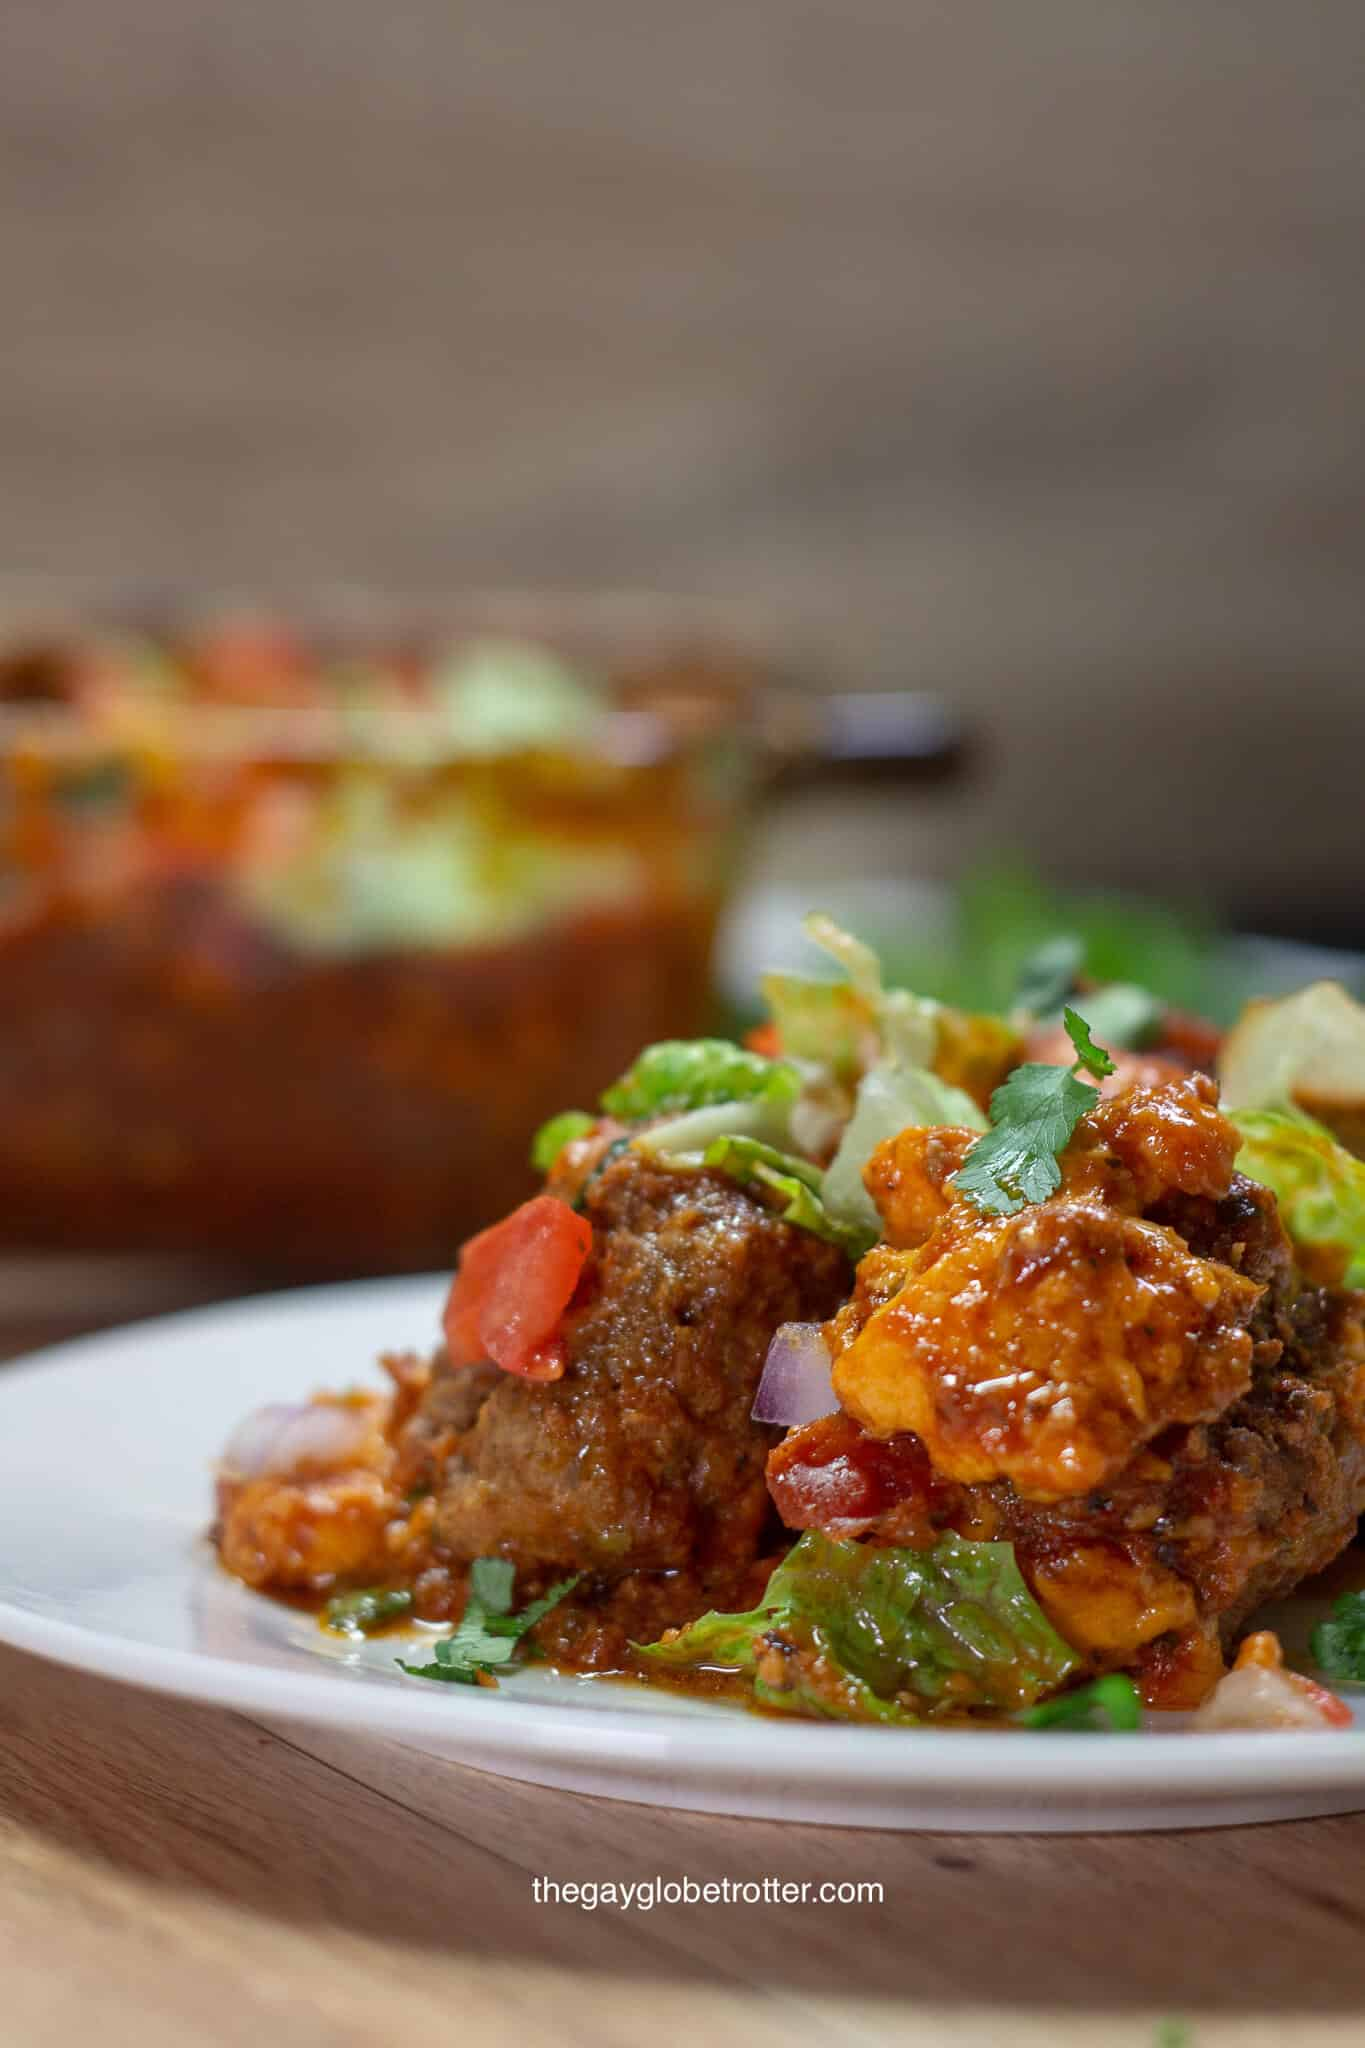 A plate of taco meatball casserole topped with tomatoes, lettuce, and cheese.